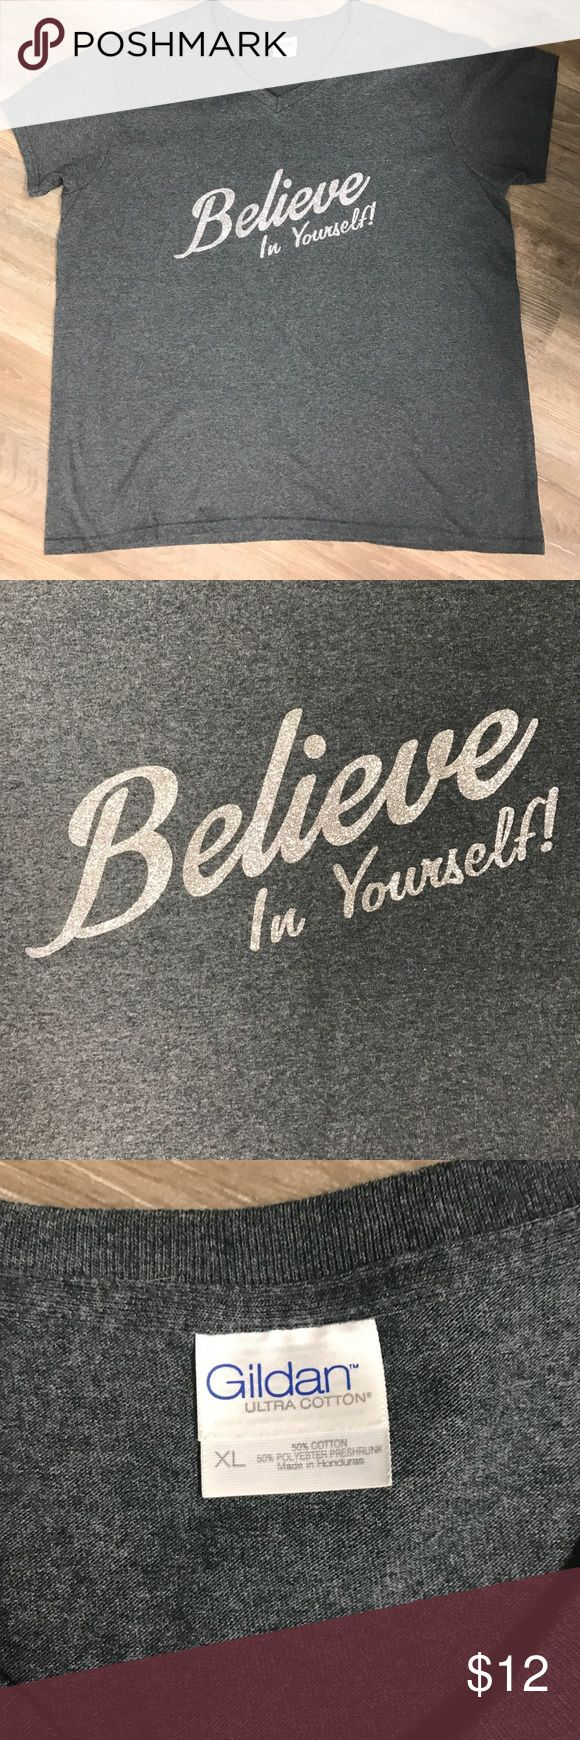 """Glitter Shirt Glitter Message Shirt with the saying in silver glitter """"Believe In Yourself"""" on dark gray Gildan brand XL V neck shirt. Like brand new. Worn 1 time. Had this shirt made. It's an original. Not another one like to it. Measuring bust 22.5"""" & length 27"""". Gildan Tops Tees - Short Sleeve"""